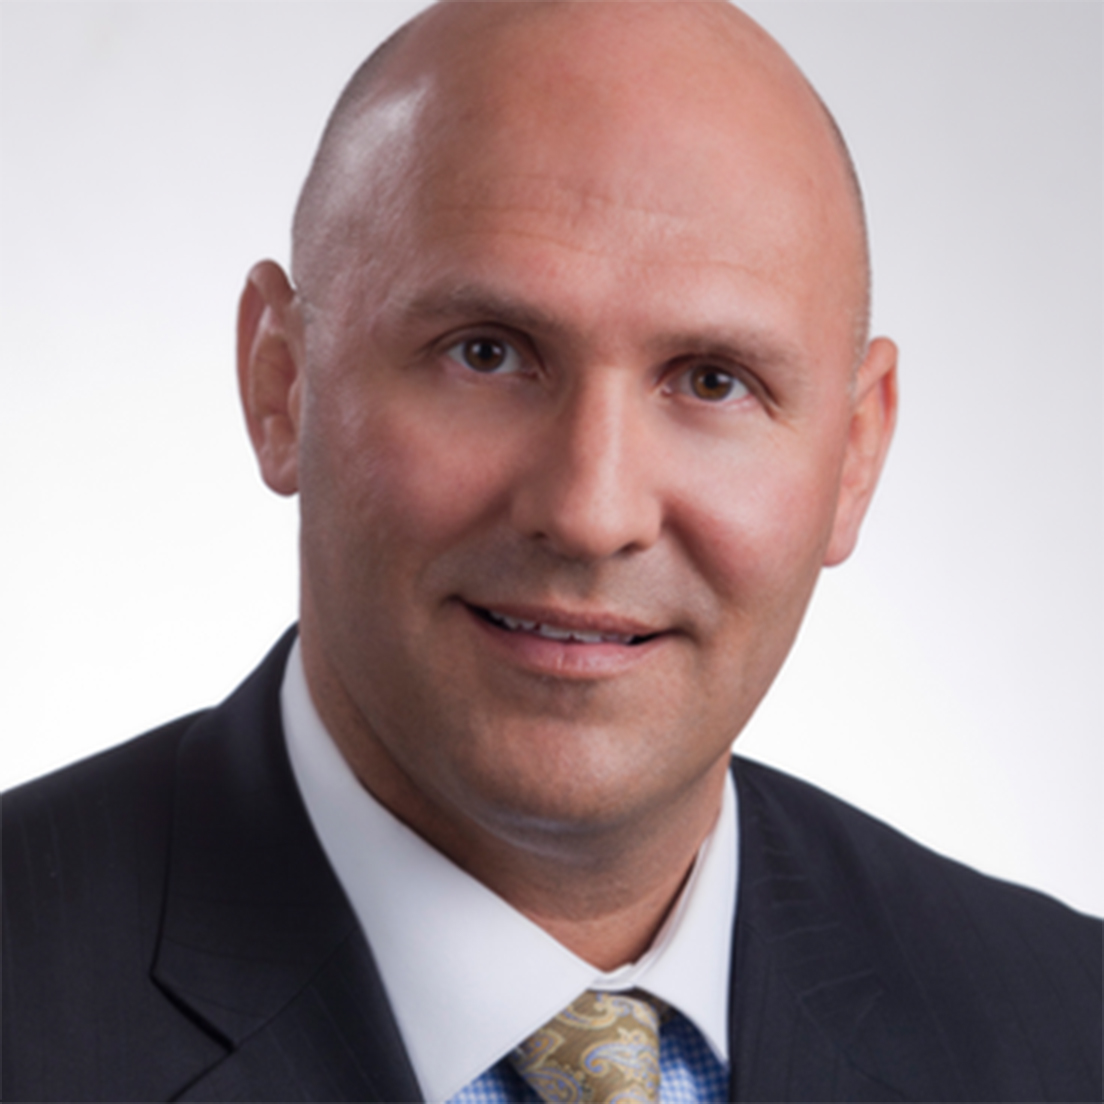 Photograph of David Olivencia advisor to  the board of directors at AboveBoard.